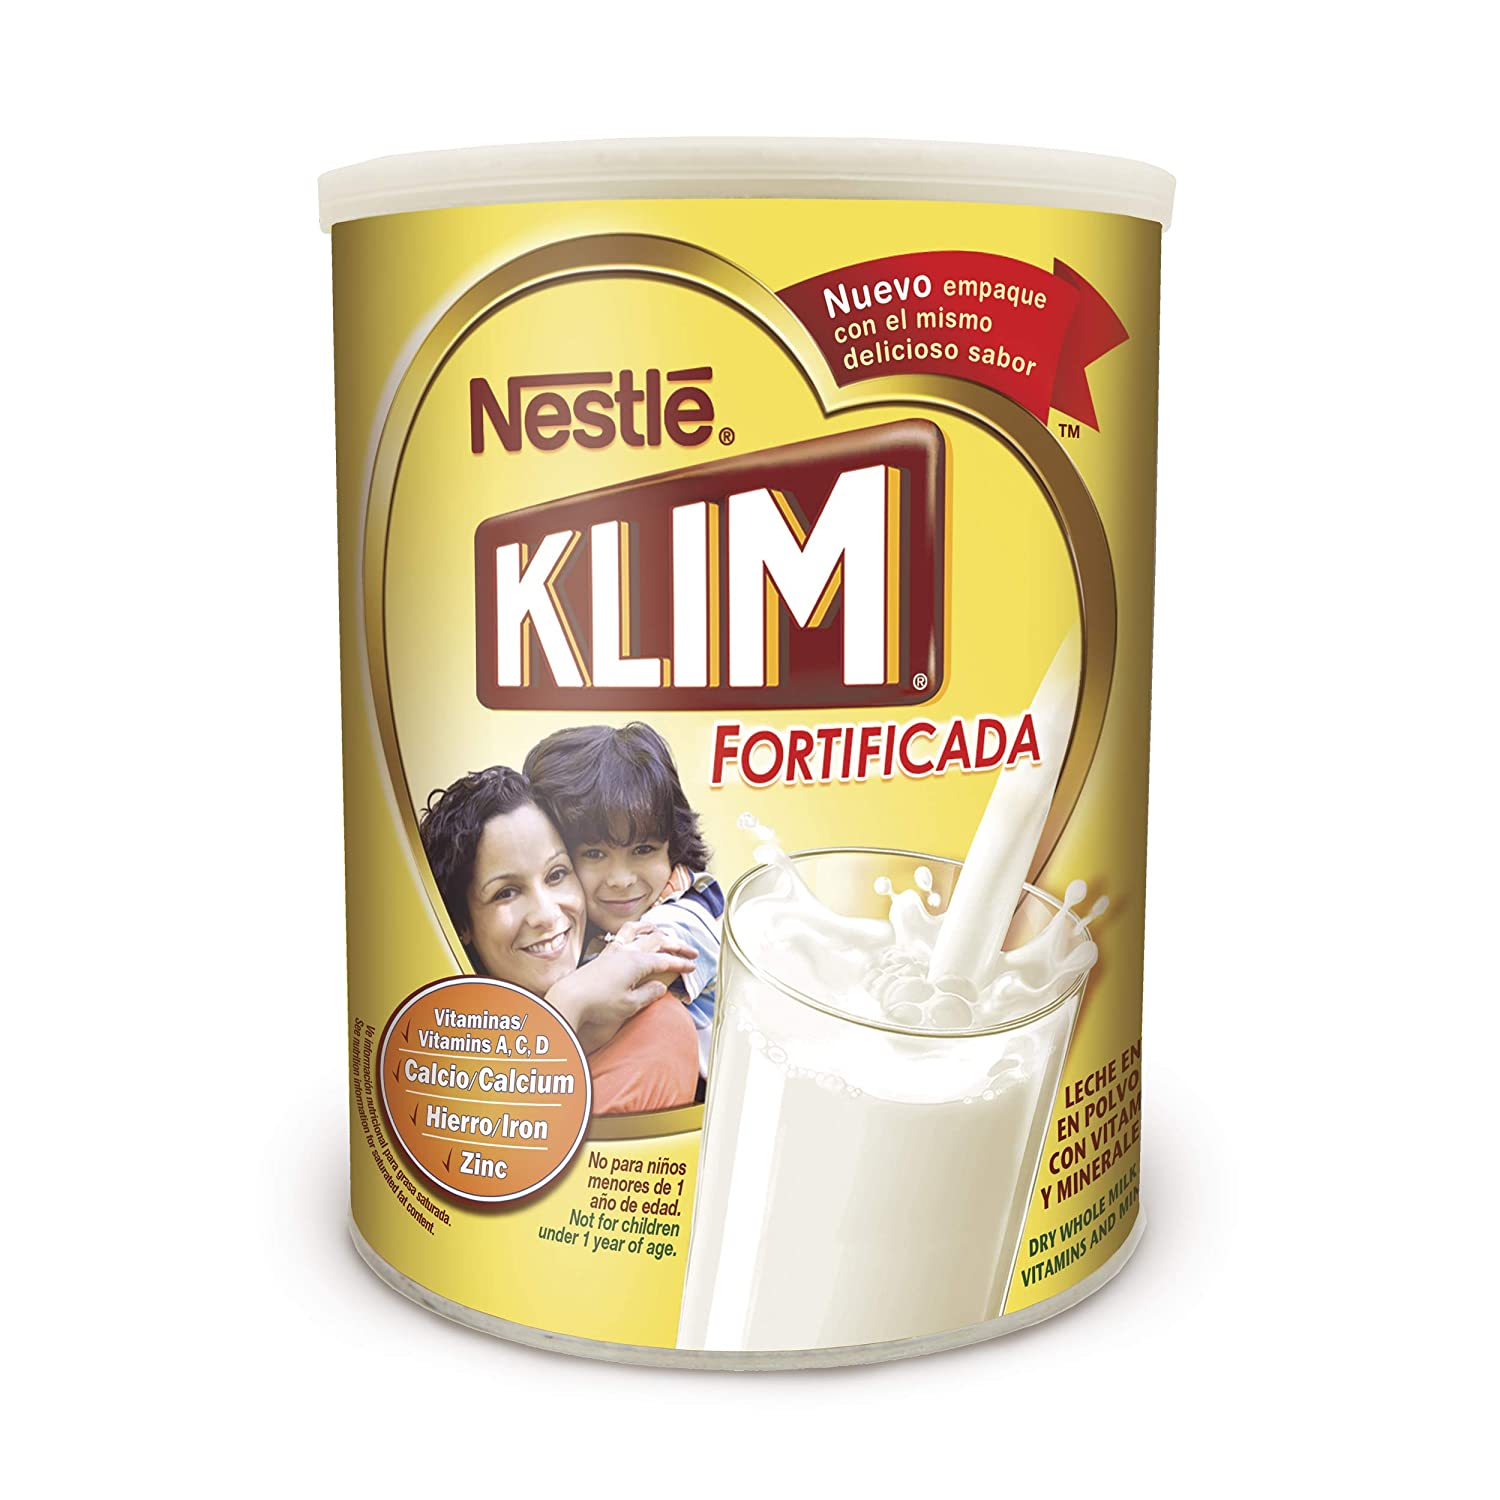 Amazon.com : Nestle KLIM Fortificada Dry Whole Milk Powder 12.7 oz. Canister : Grocery & Gourmet Food